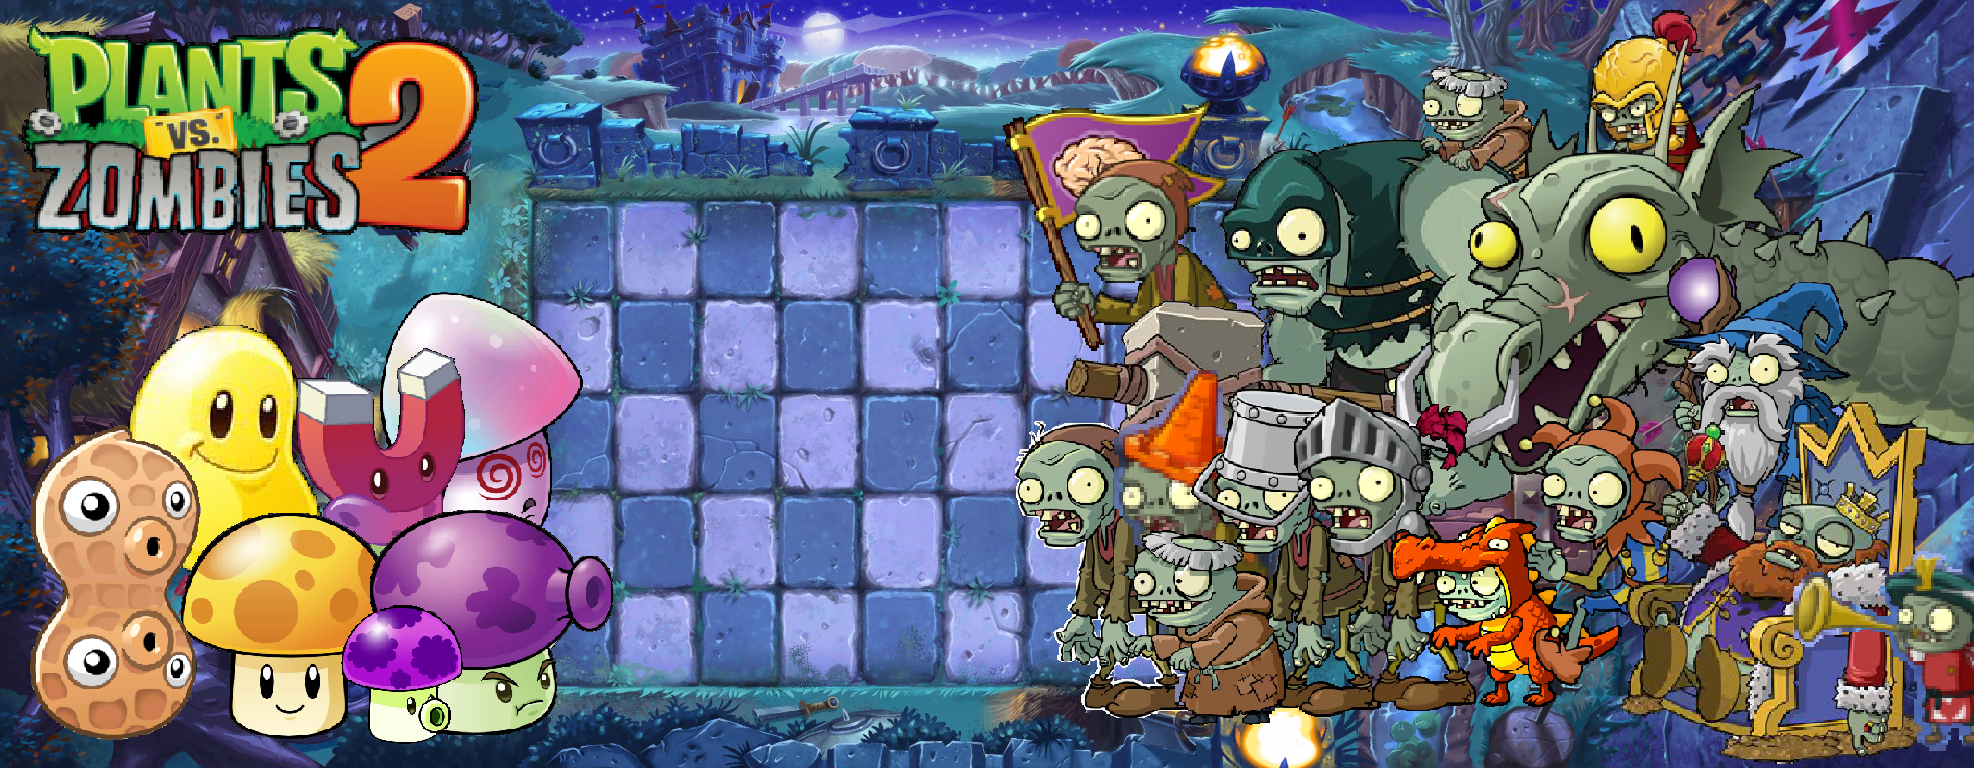 Plants Vs Zombies 2 Dark Ages Wallpaper By Photographerferd On